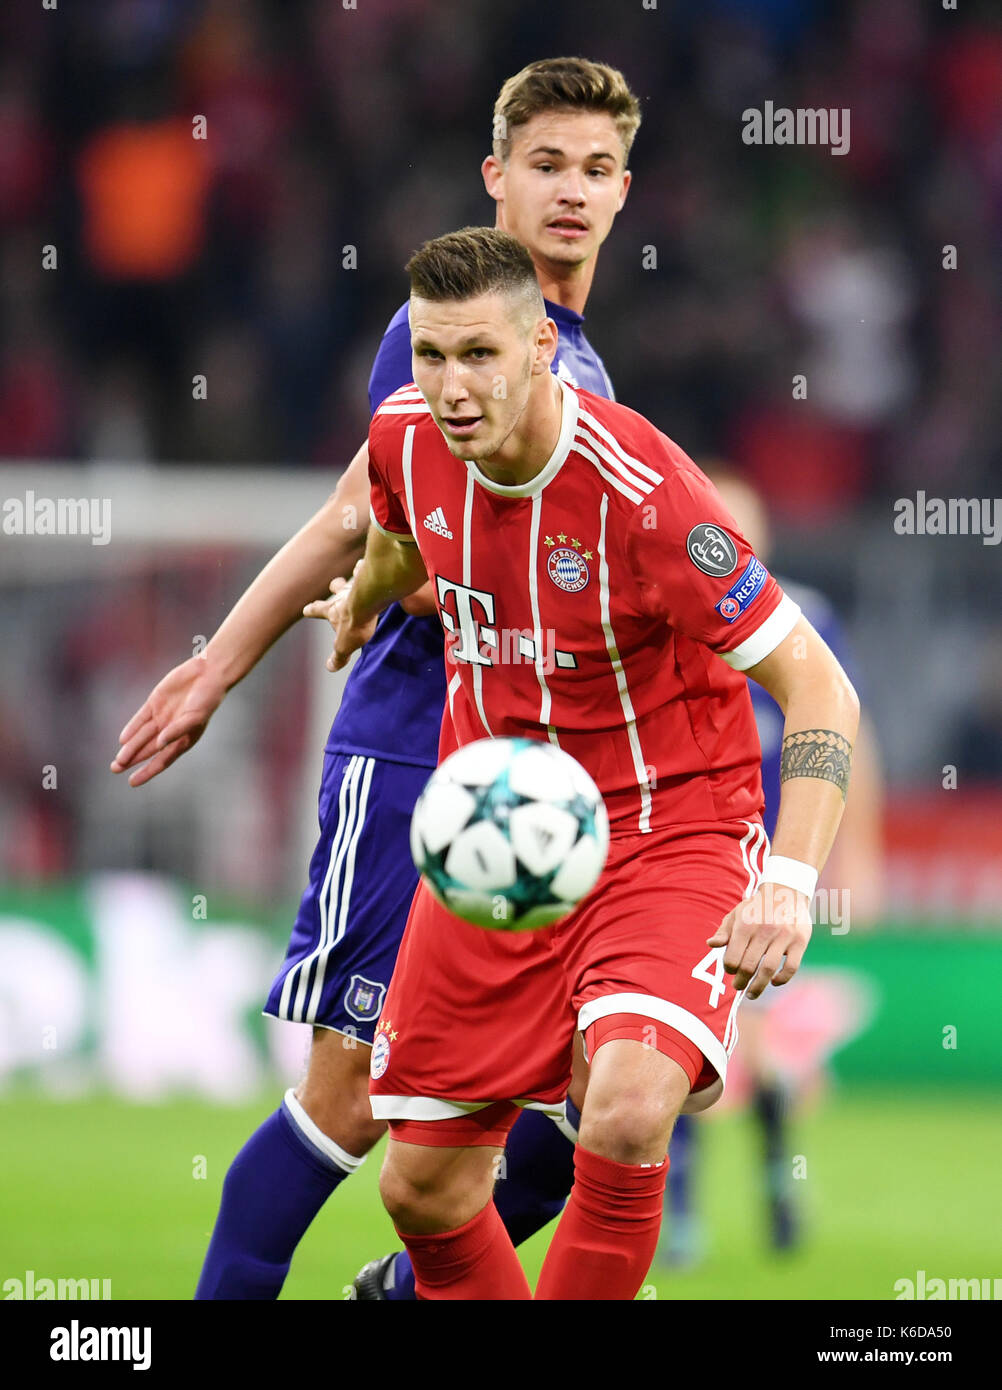 Munich's Niklas Suele (front) and Anderlecht's Olivier Deschacht in action during the Champions League Group B match between Bayern Munich's and RSC Anderlecht at the Allianz Arena in Munich, Germany, 12 September 2017. Photo: Tobias Hase/dpa - Stock Image